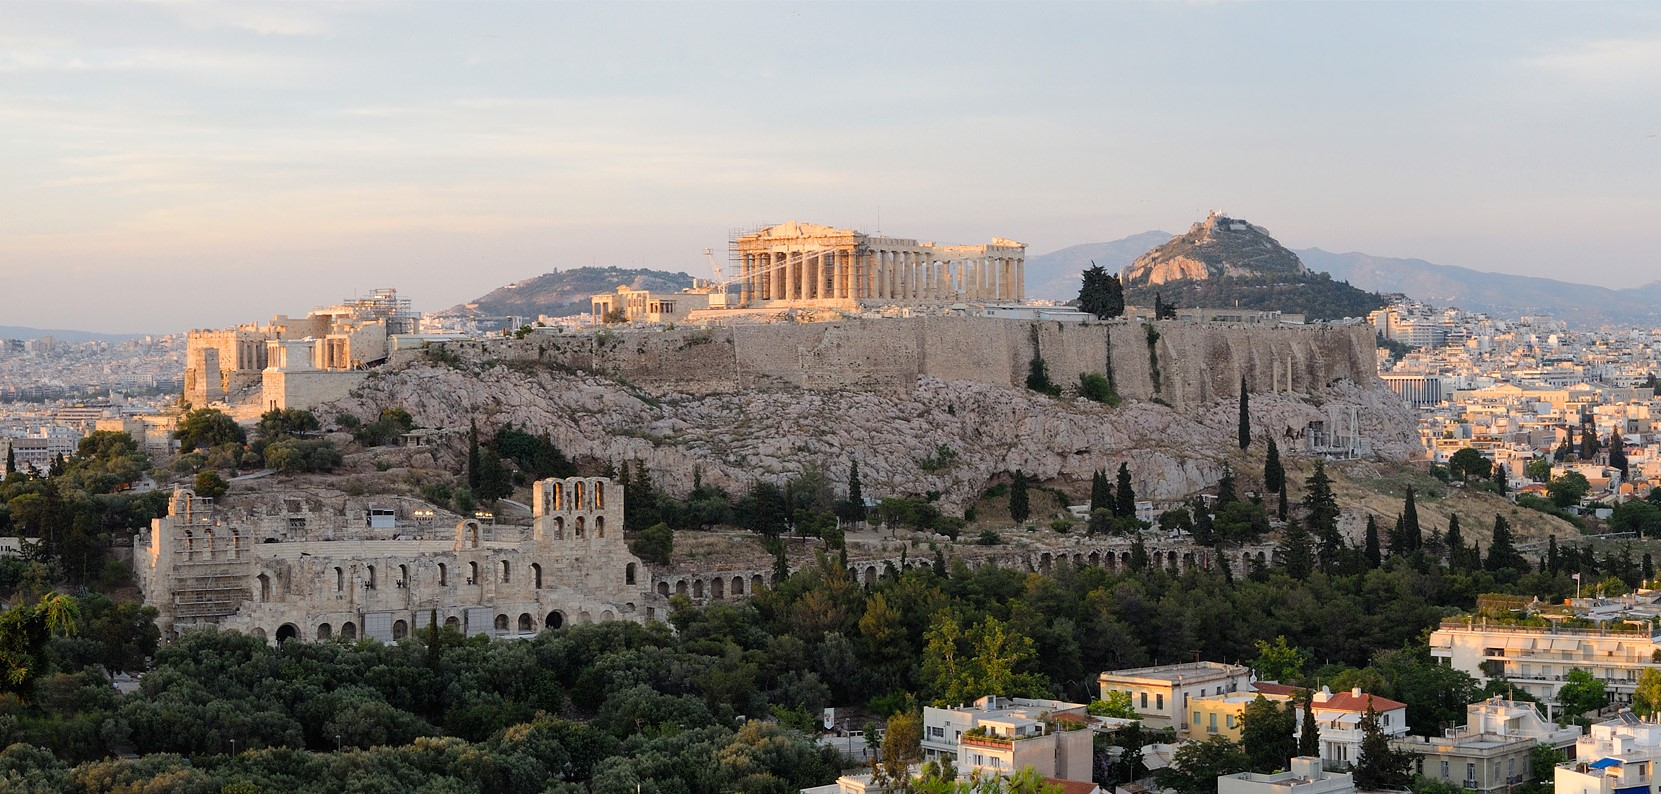 Image 16. The Acropolis of Athens [with Parthenon, the temple to Athena], seen from Philopappou hill . Photo by Christophe Meneboeuf.